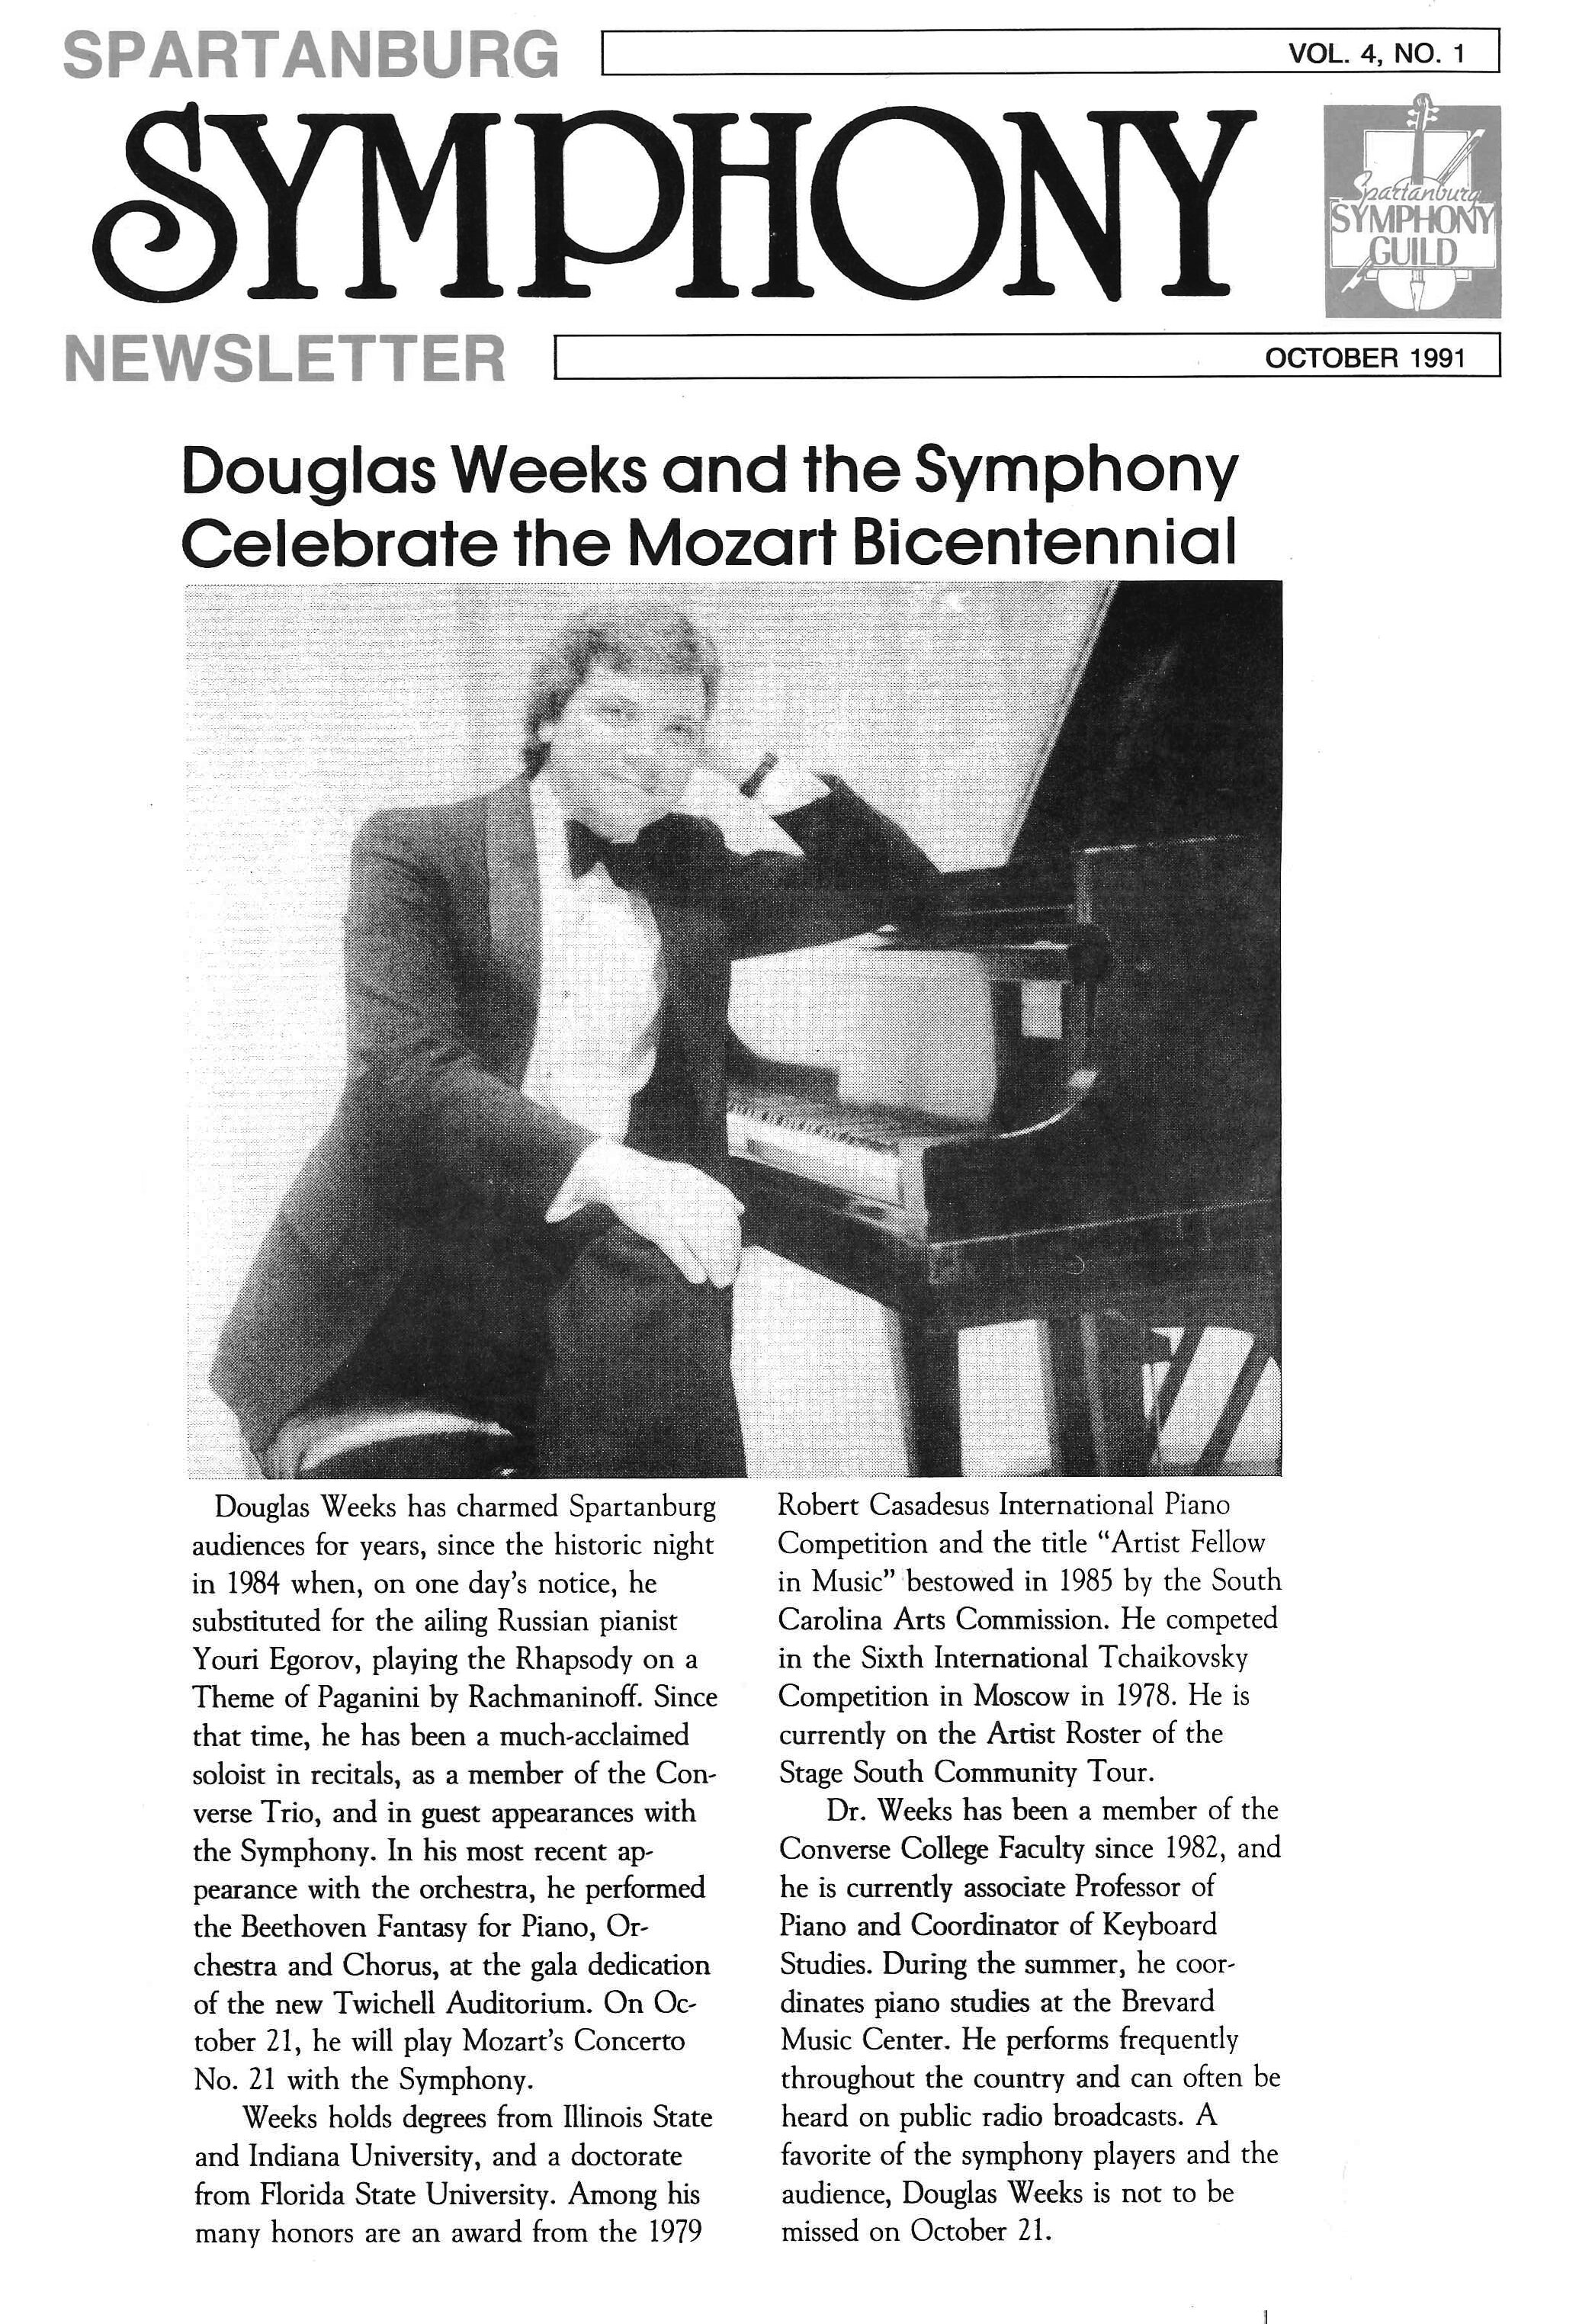 Article in the October 1991  Spartanburg Symphony Newsletter  highlighting guest soloist Dr. Douglass Weeks